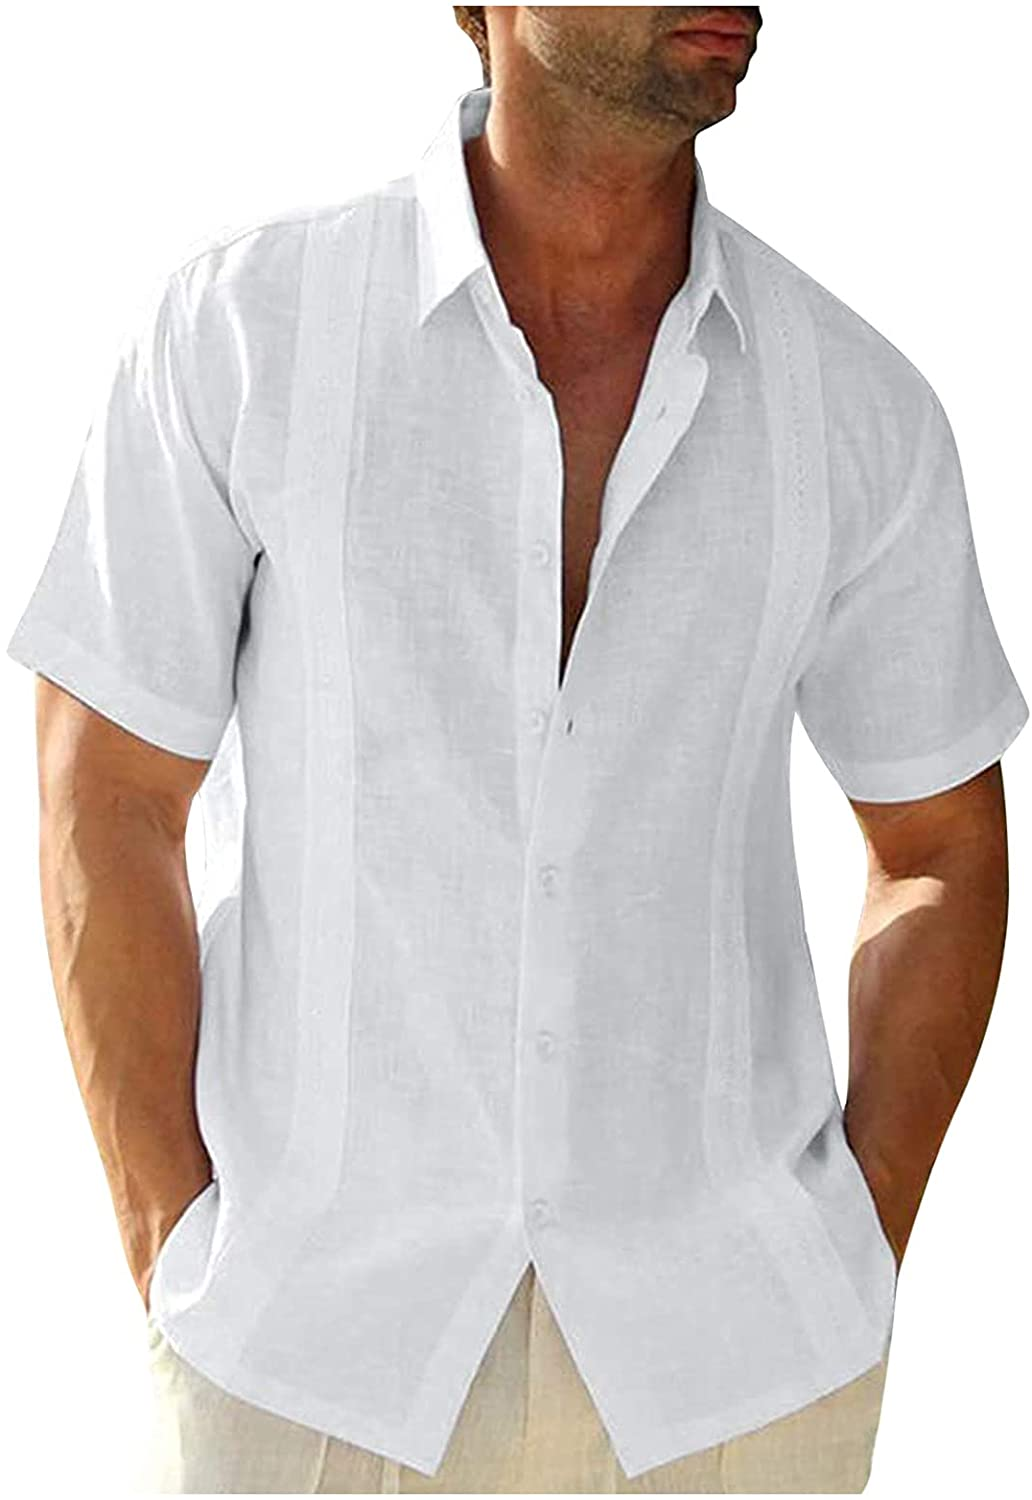 Mens Casual Summer Shirts Short Sleeve Button Down Linen Dress Shirt Embroidered Plain Blouse Fashion Slim Fit Tops